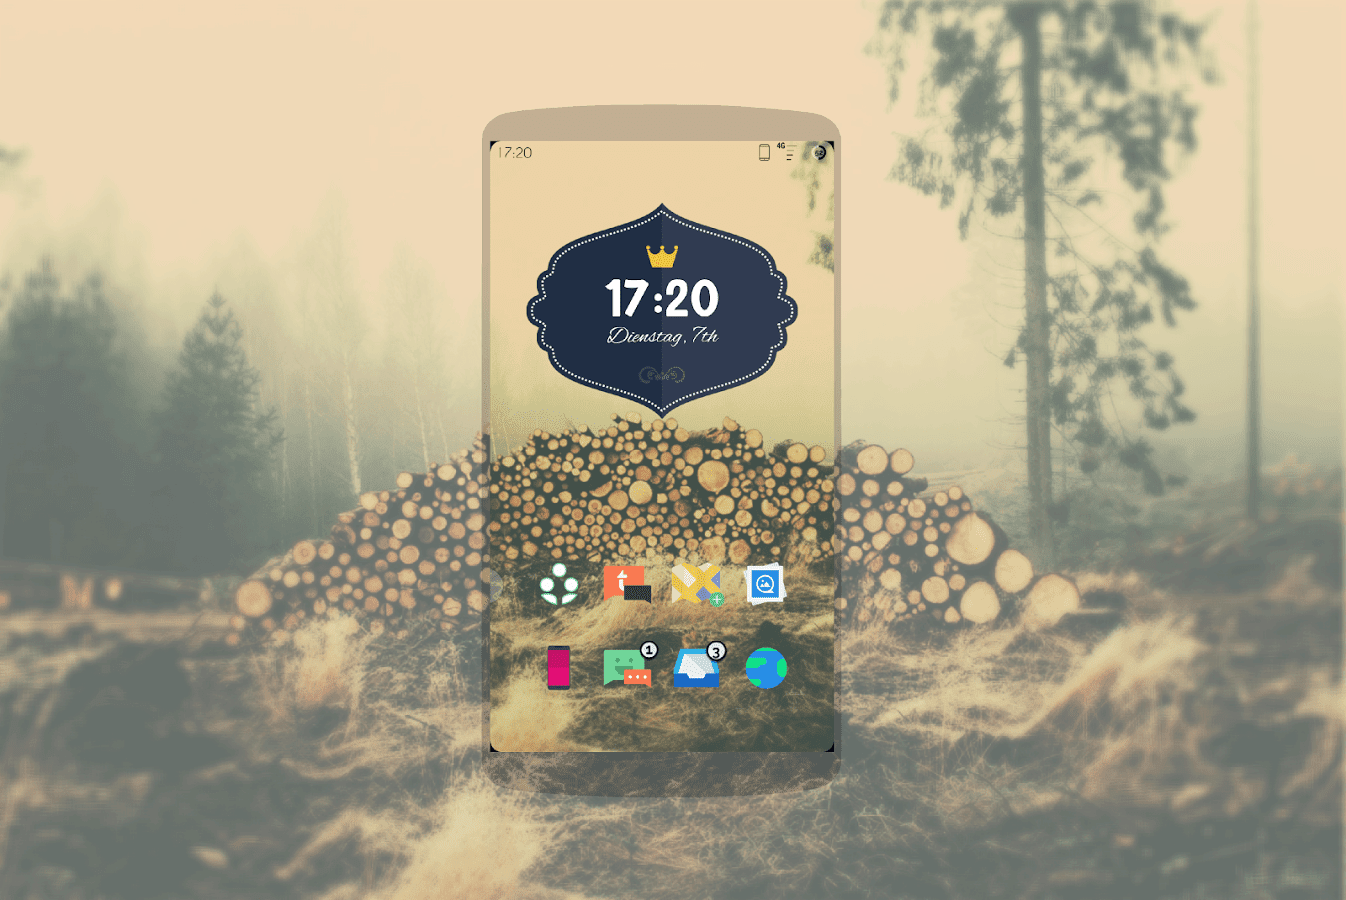 Unico Icon Pack 1.6 Cracked APK 2015 Latest is here